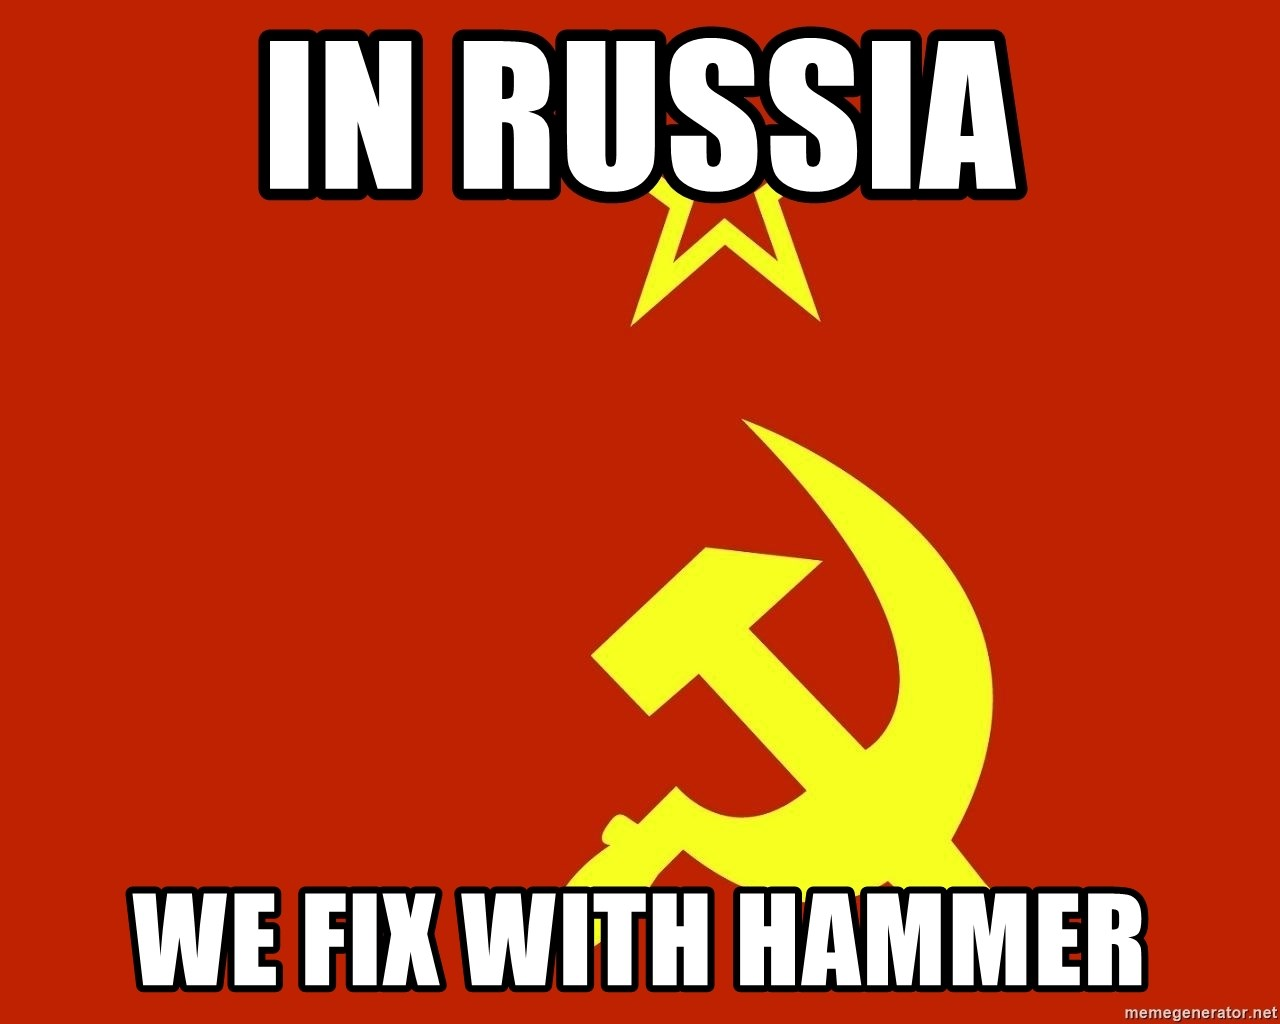 In Soviet Russia - in russia we fix with hammer